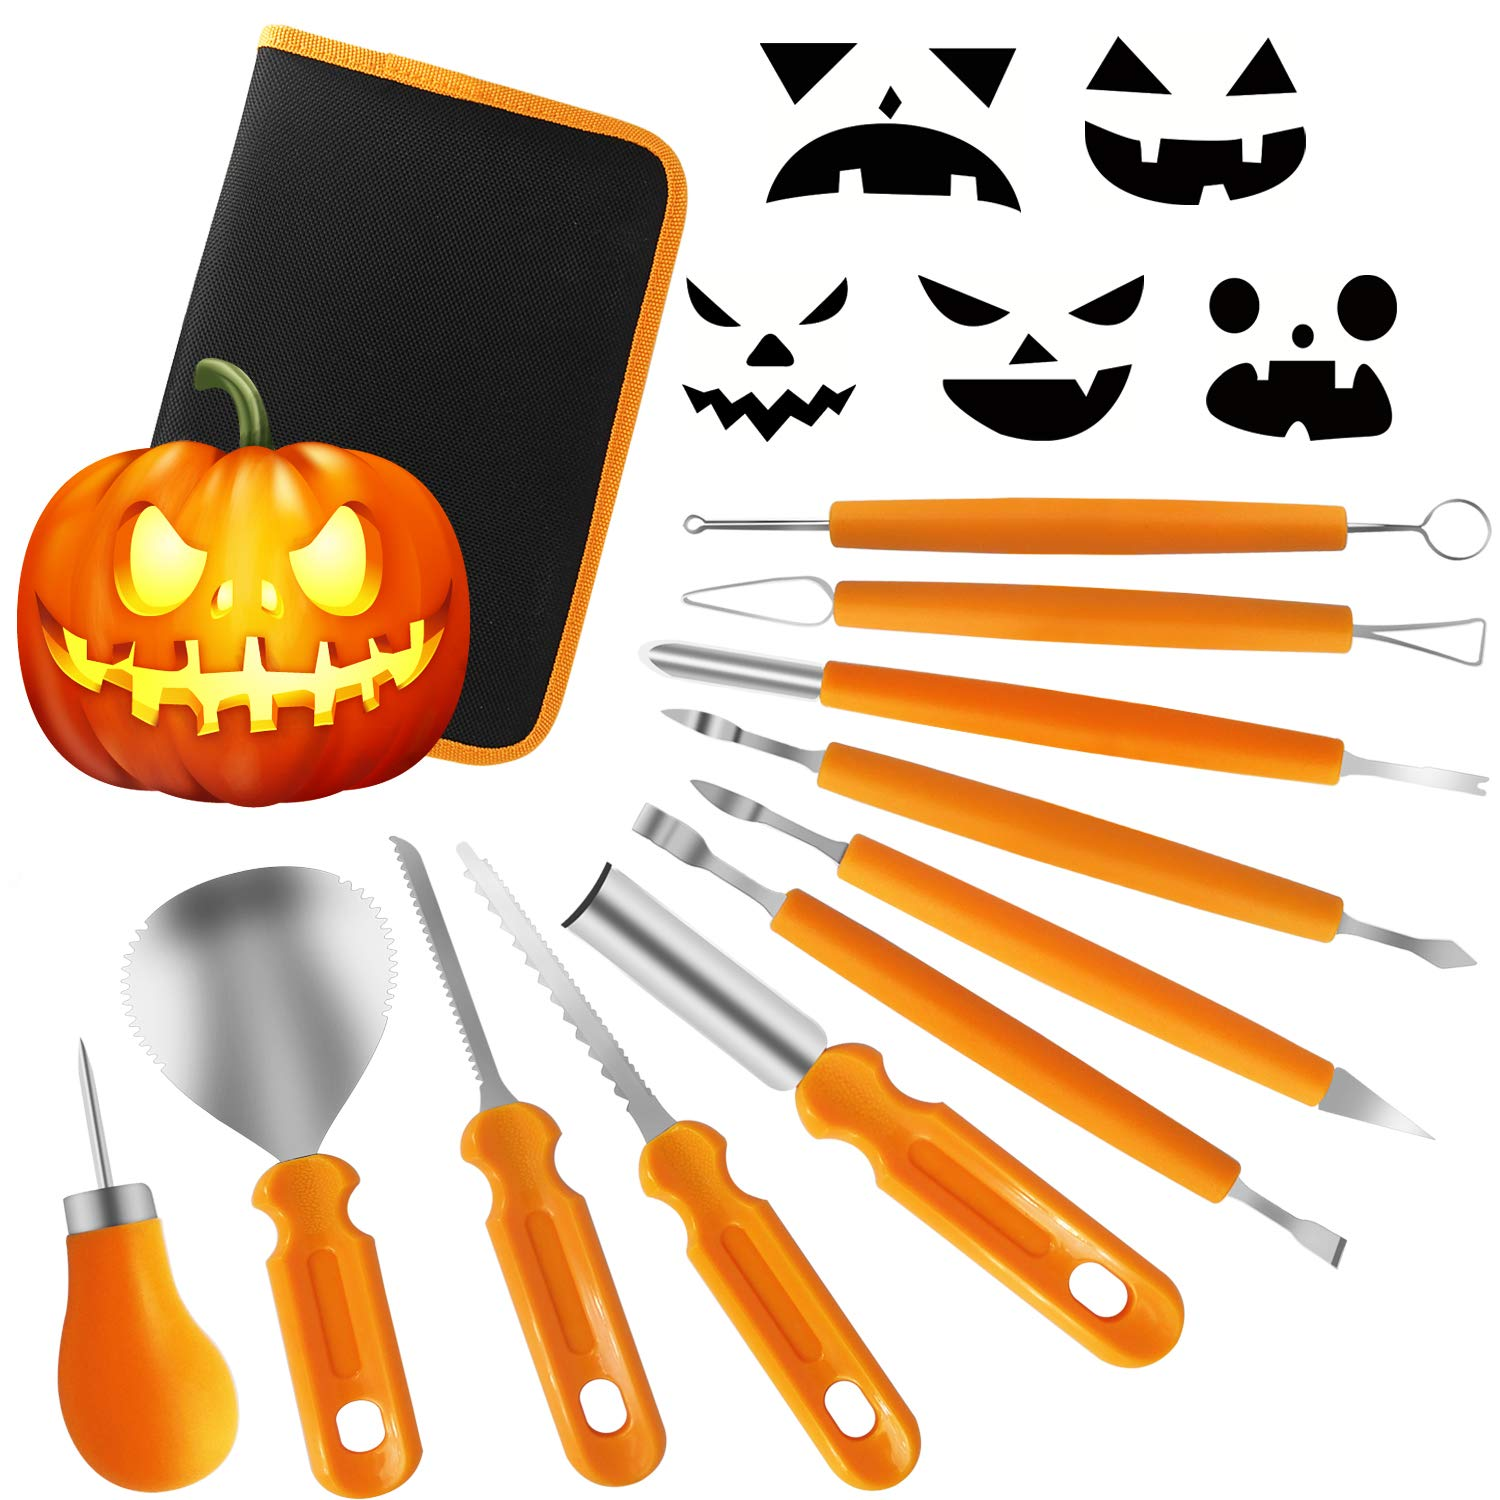 Kederwa Pumpkin Carving Kit, 11Pcs Heavy Duty Stainless Steel Carving Tools with Carrying Case for Pumpkin decoration jack-o-lantern carving (B Style) by Kederwa